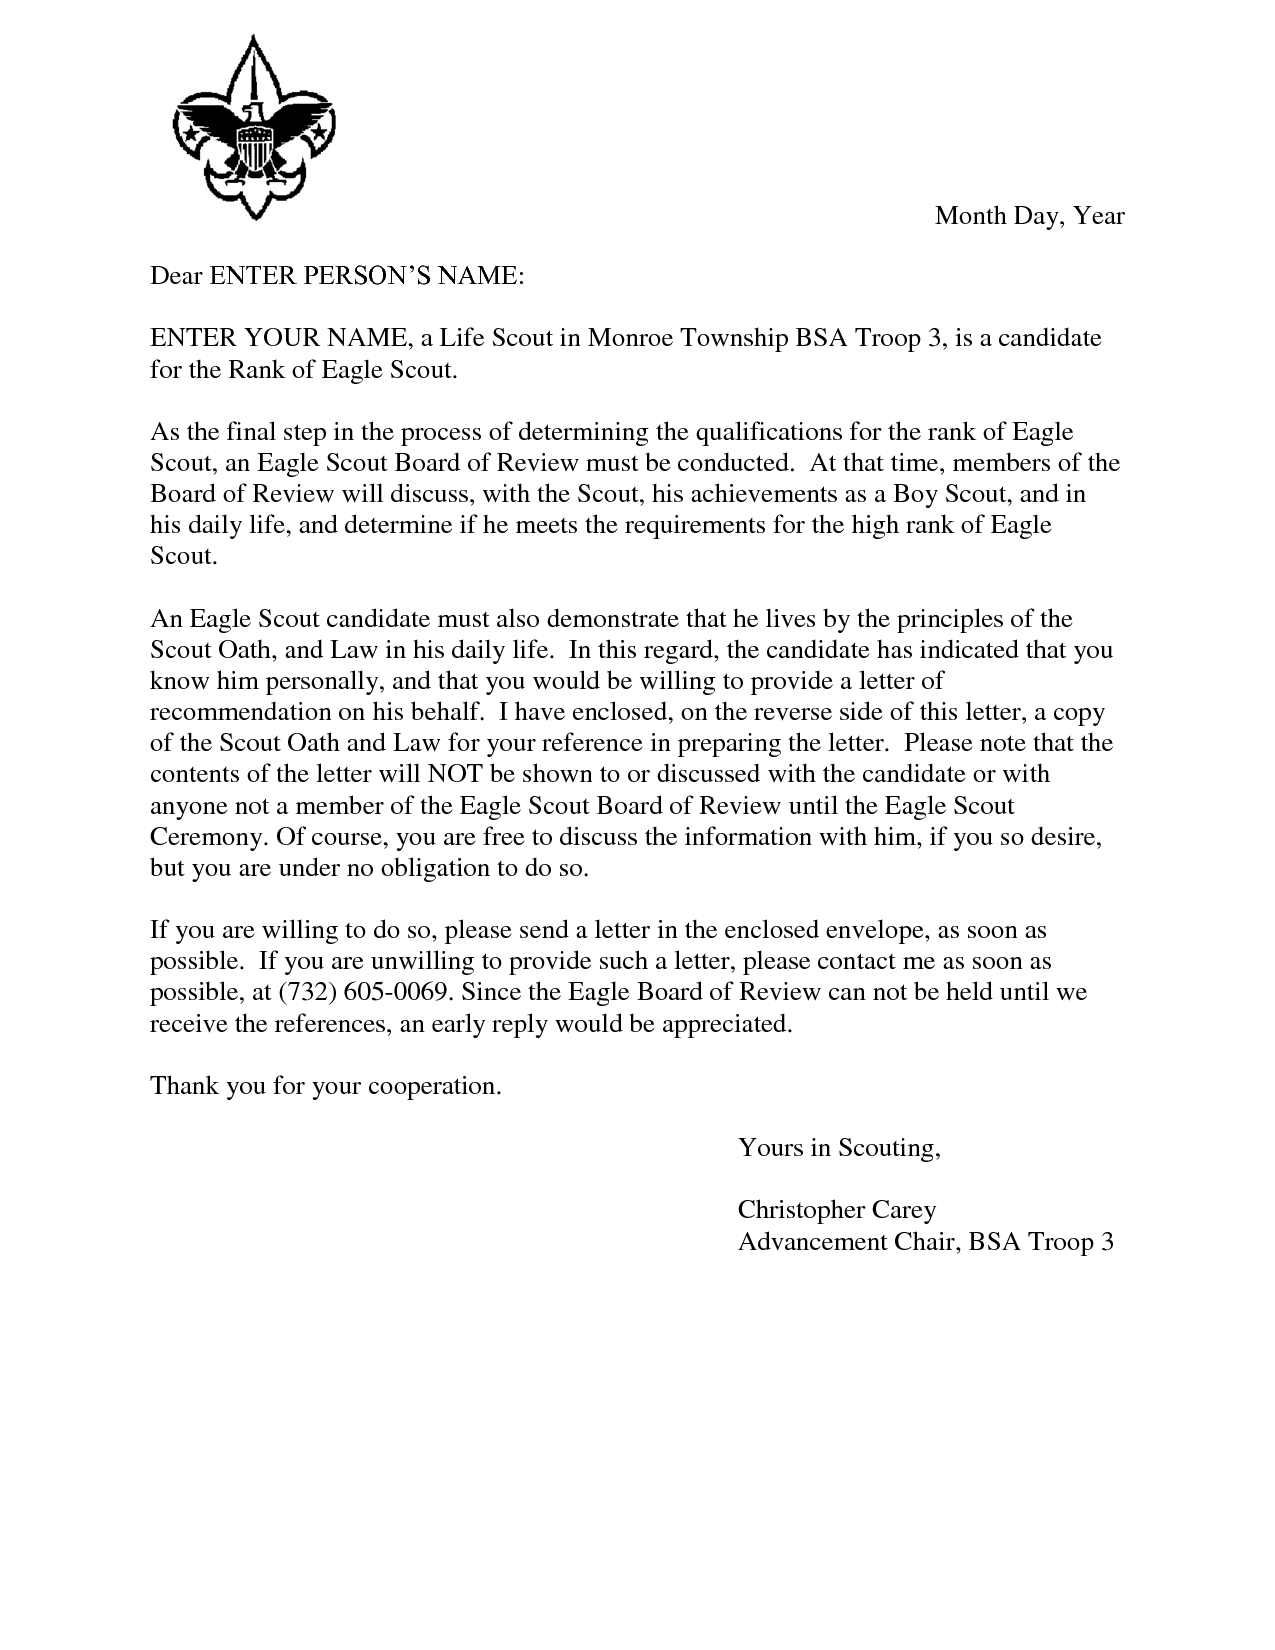 Reference Letter Template Pdf - Eagle Scout Reference Request Sample Letter Doc 7 by Hfr990q